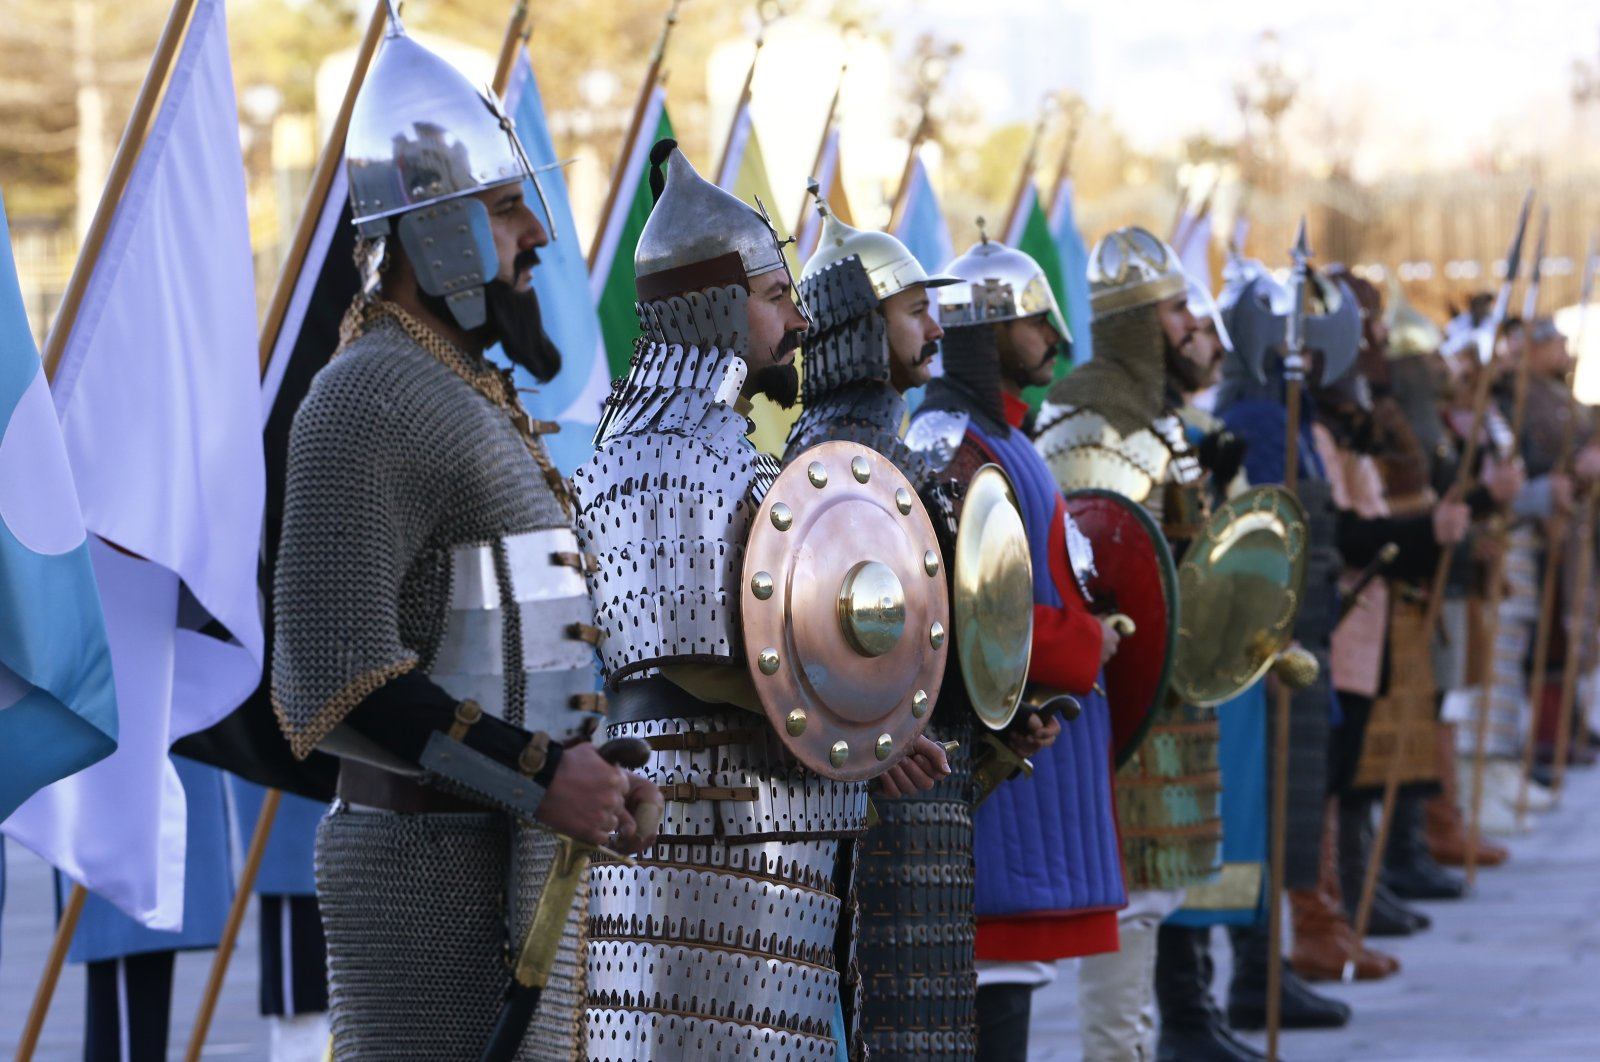 Soldiers dressed in historical Turkic states warrior attire stand during the welcoming ceremony of Croatian President Kolinda Grabar-Kitarovic by President Recep Tayyip Erdogan, prior to their meeting at the Presidential Palace in Ankara, Turkey, Jan. 16, 2019. (AP Photo)